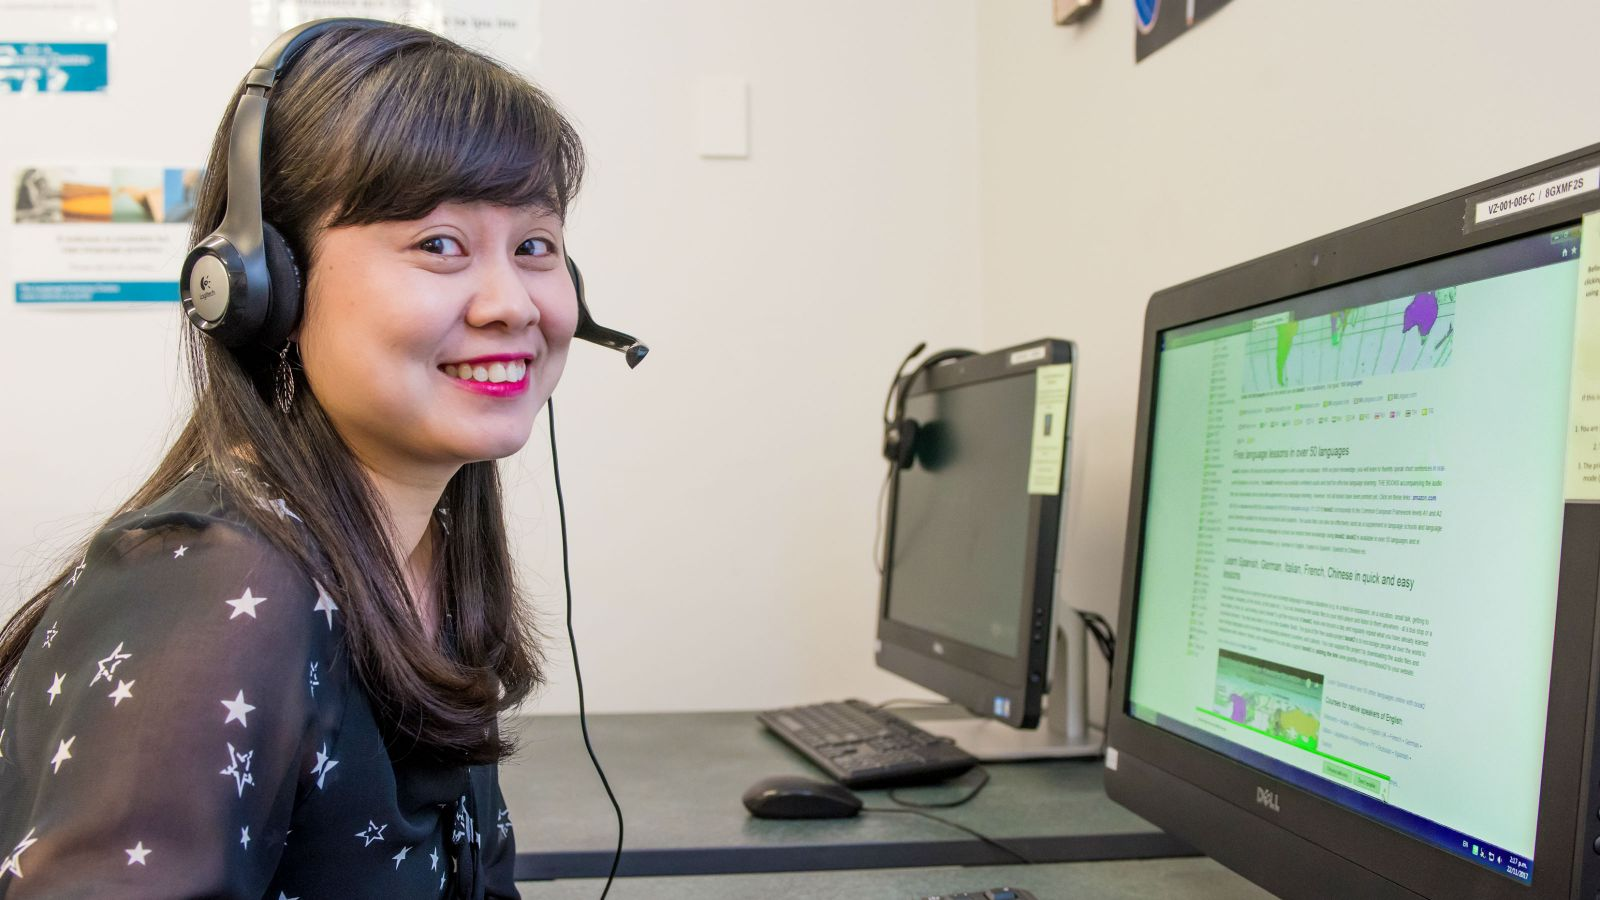 Student with headset practising language online